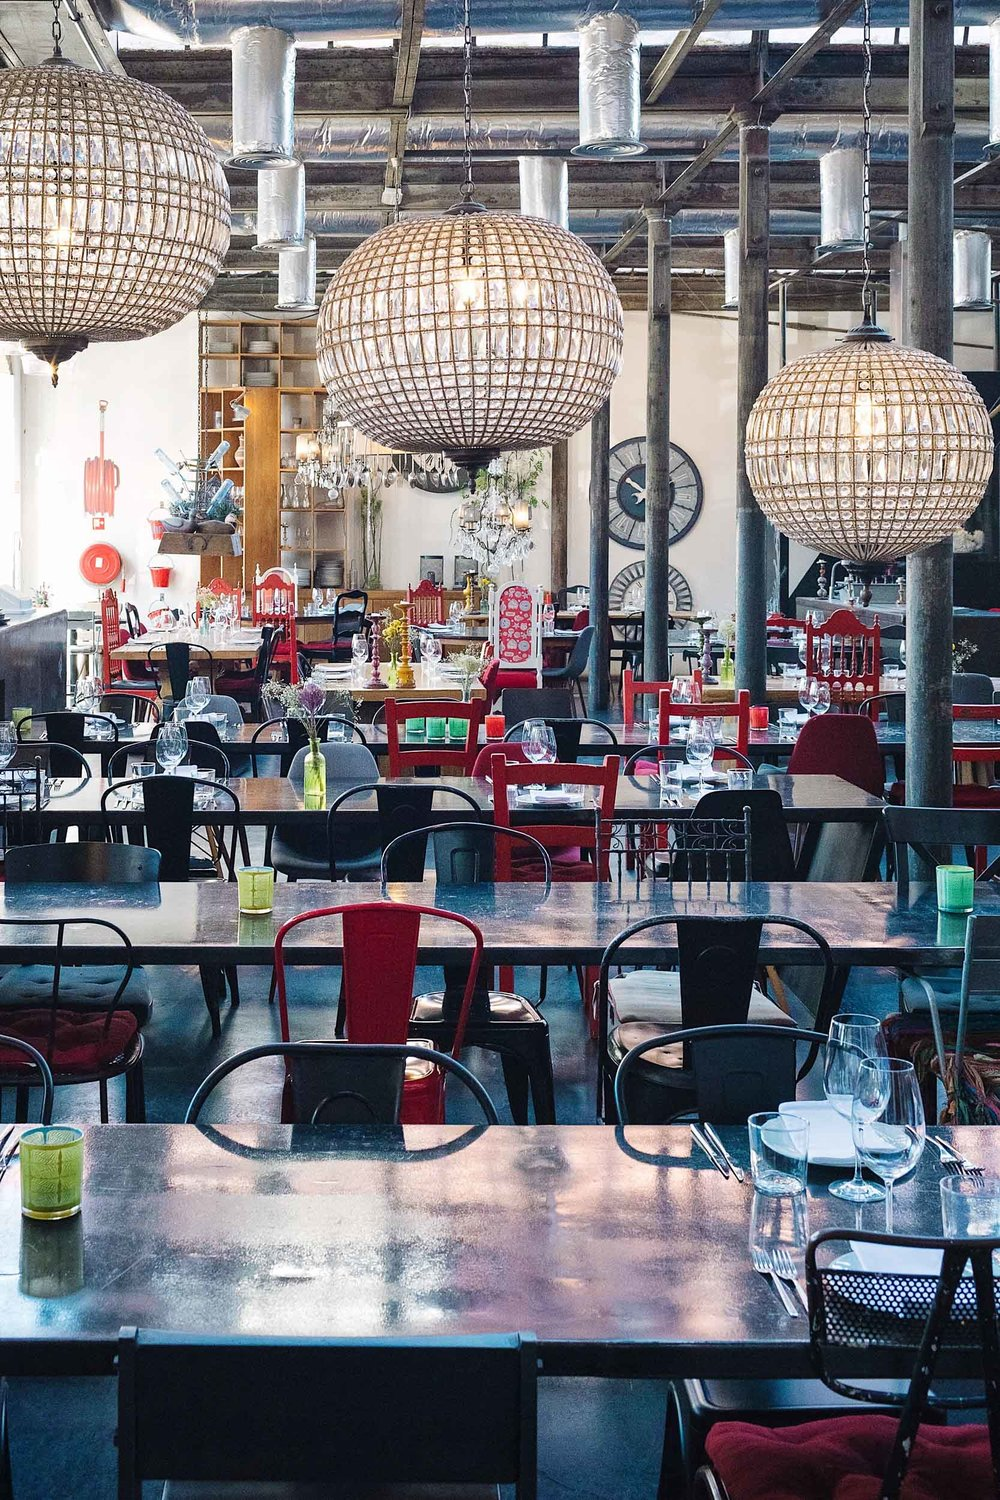 1300 Taberna: Portuguese food with a twist at LX Factory